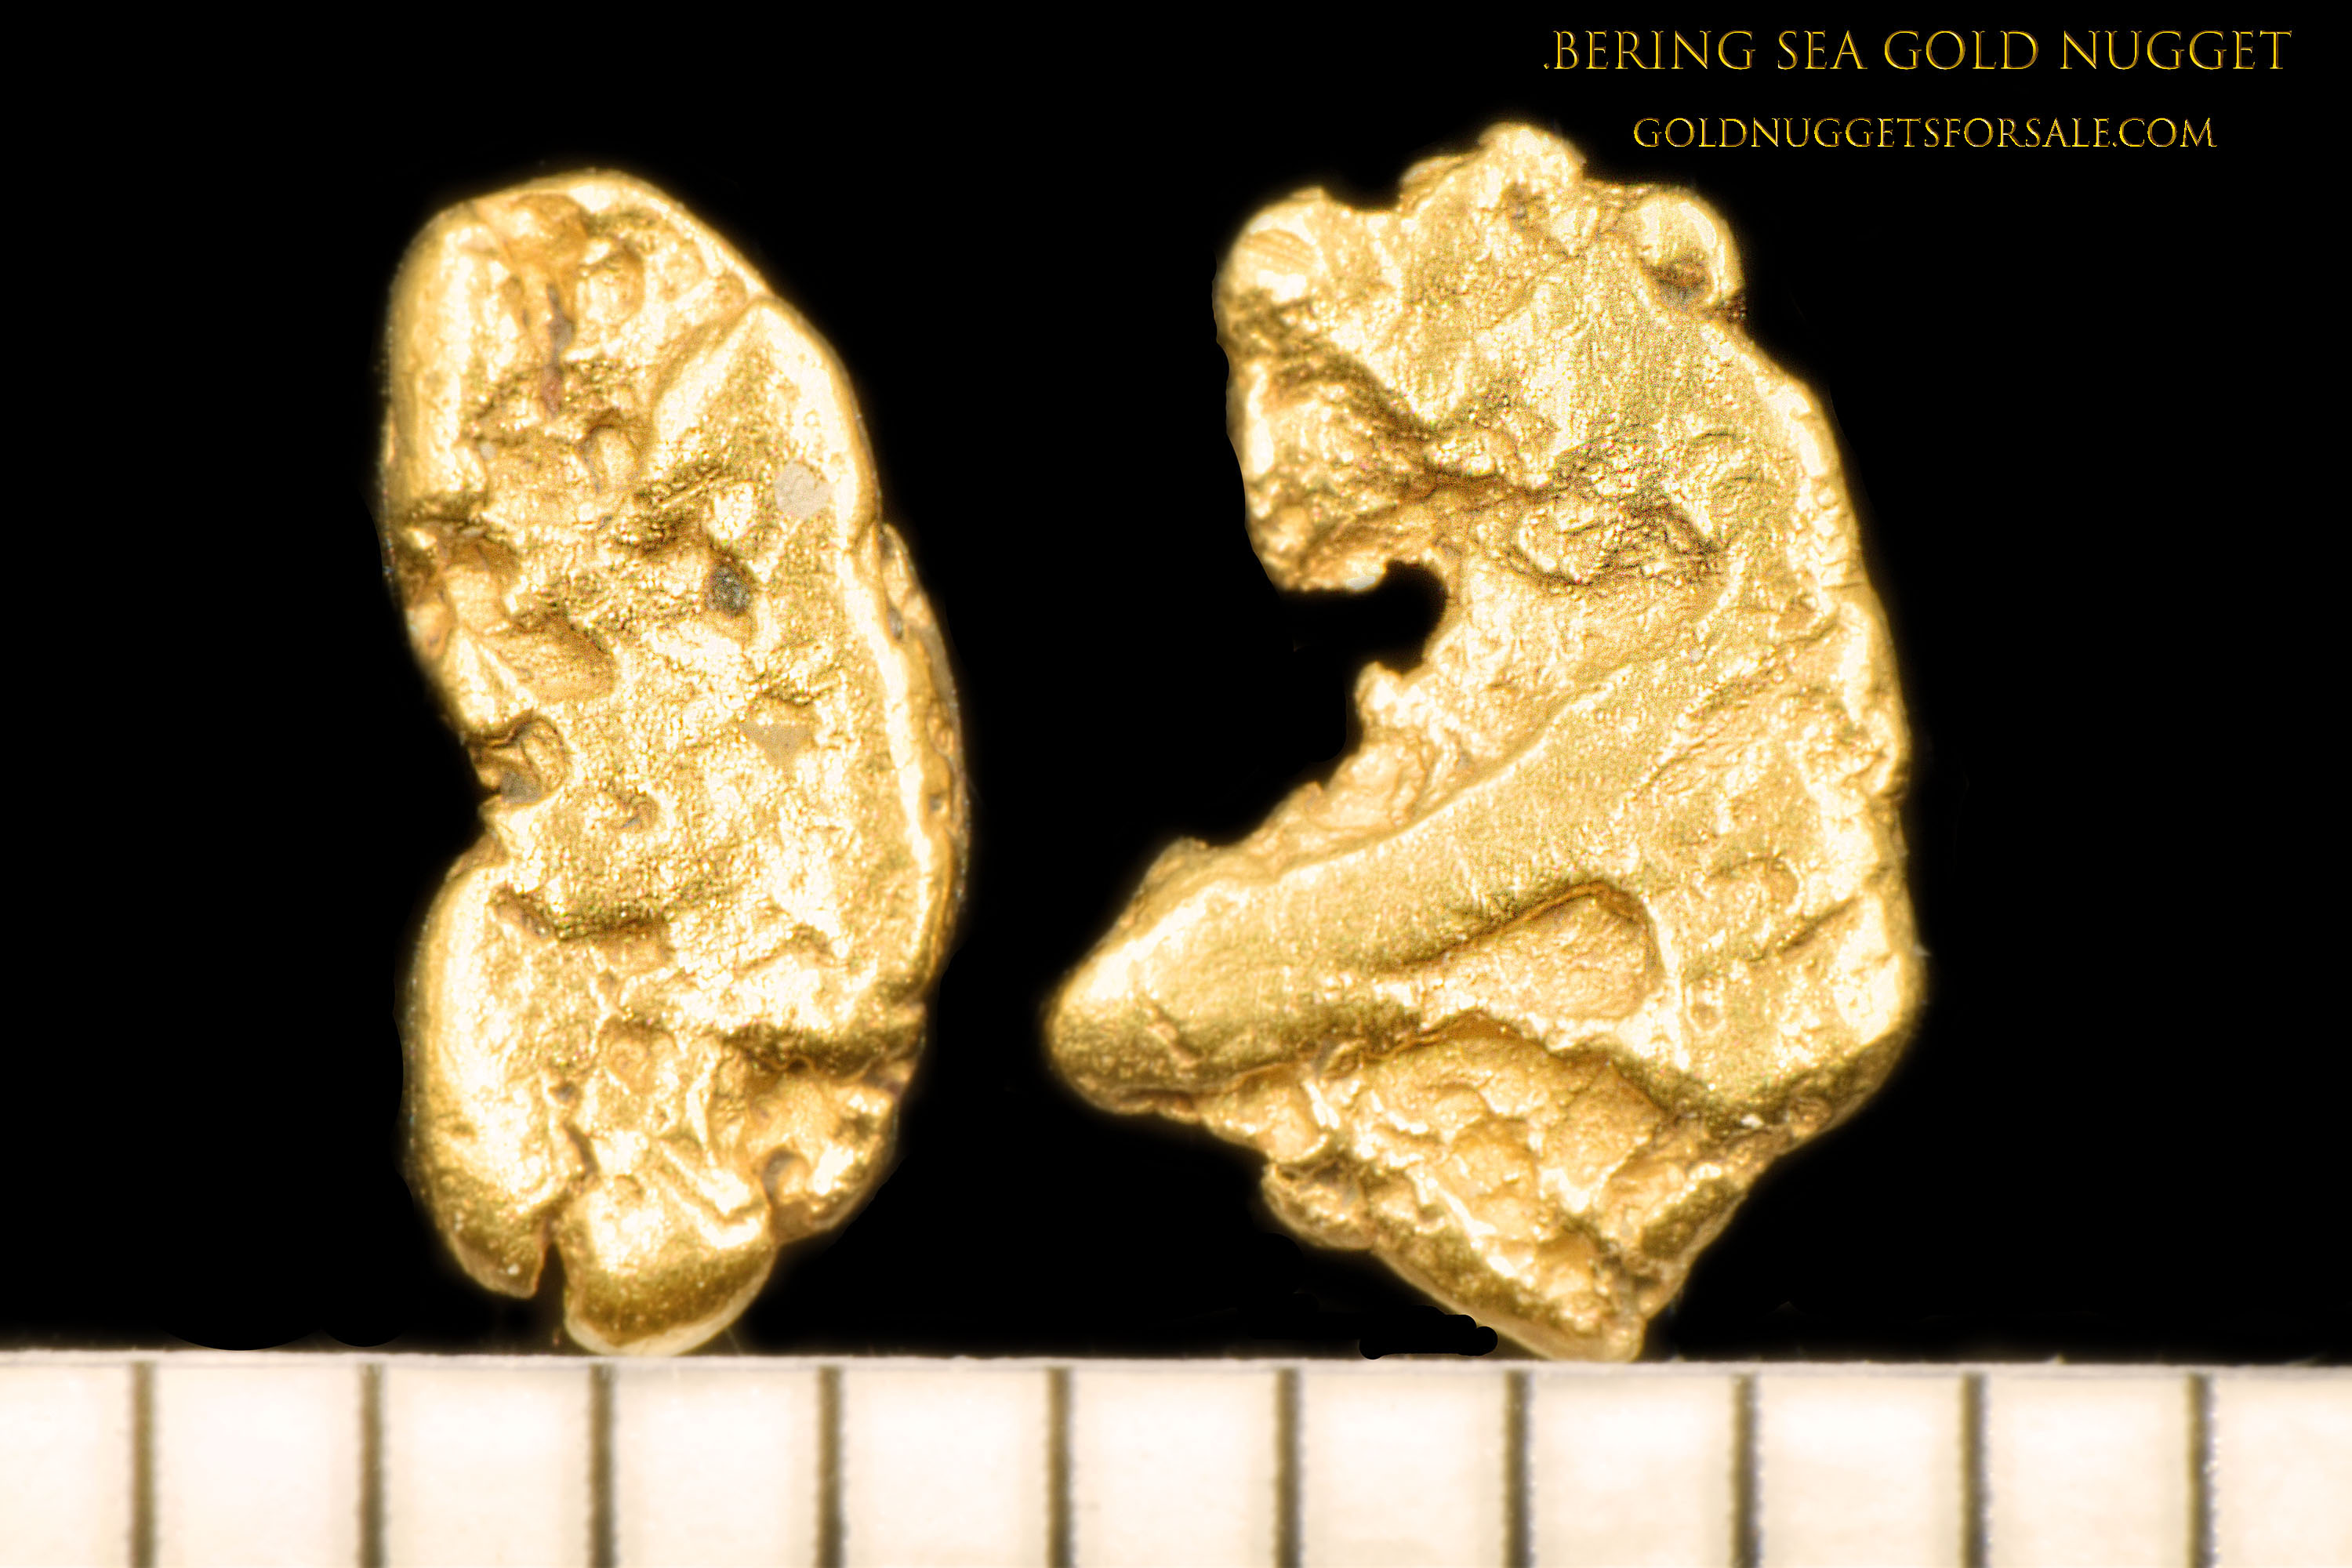 A Pair of Natural Gold Nuggets from the Bering Sea